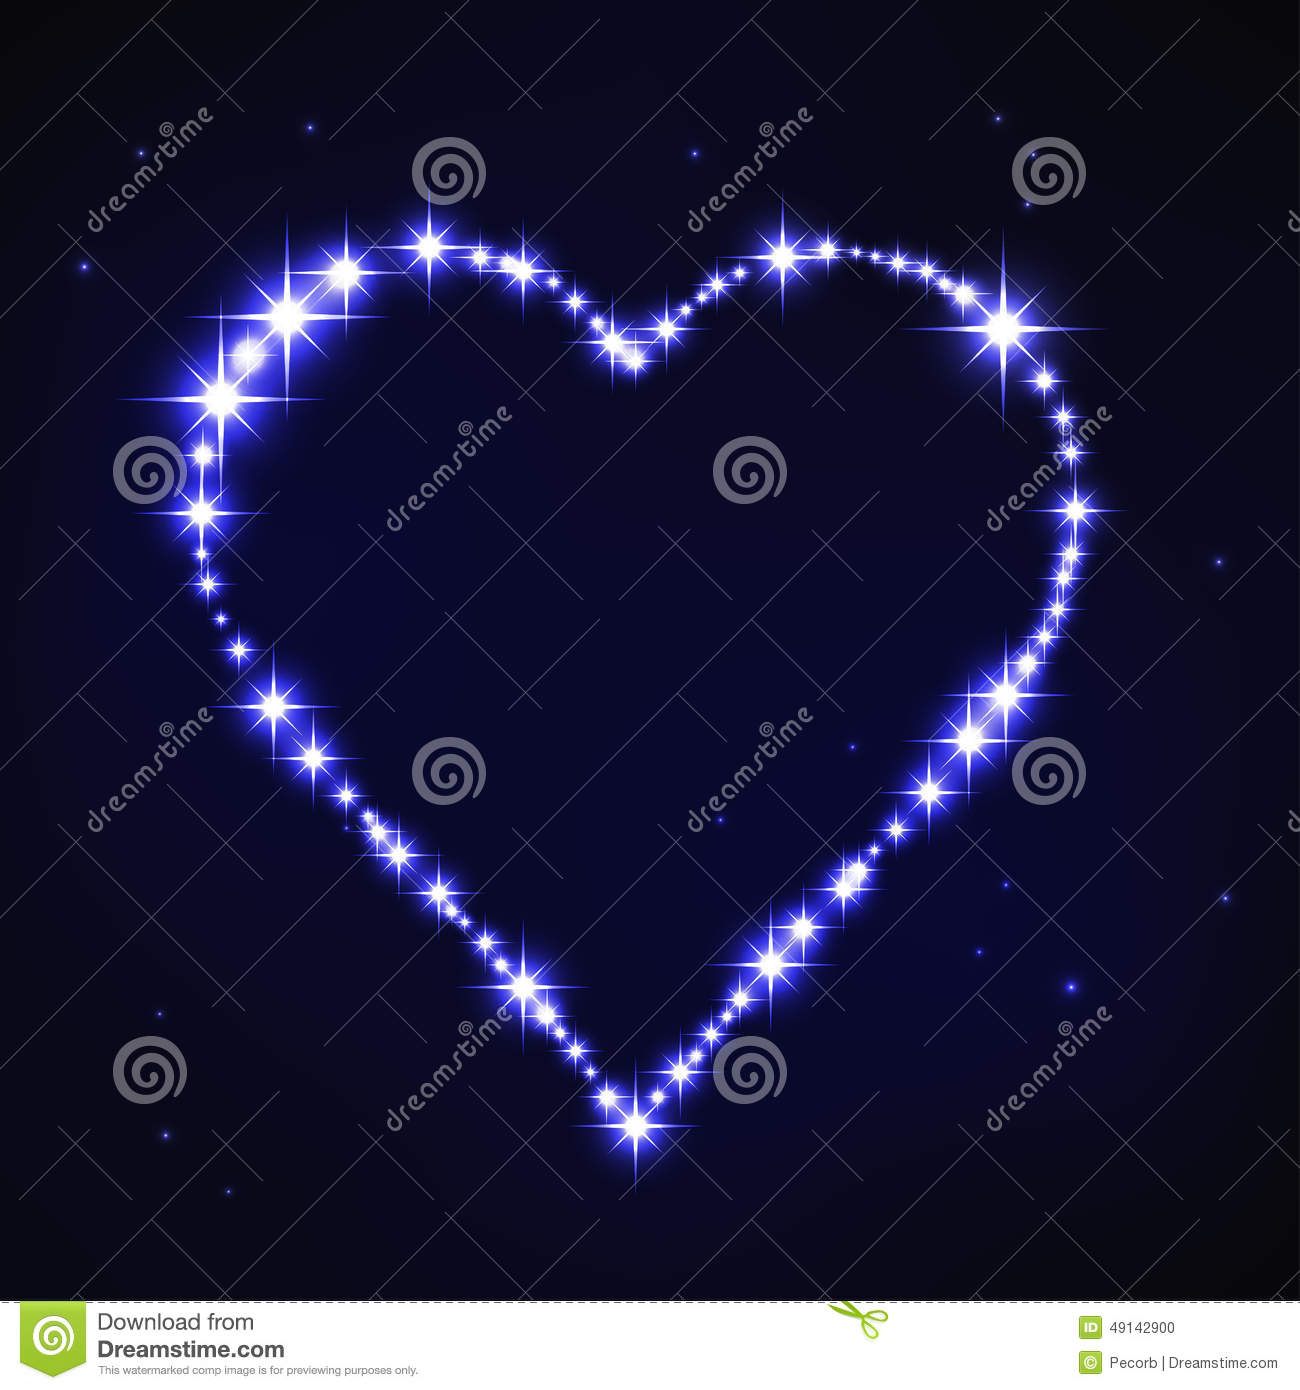 Stylized Blue Iregular Heart In Style Of Star